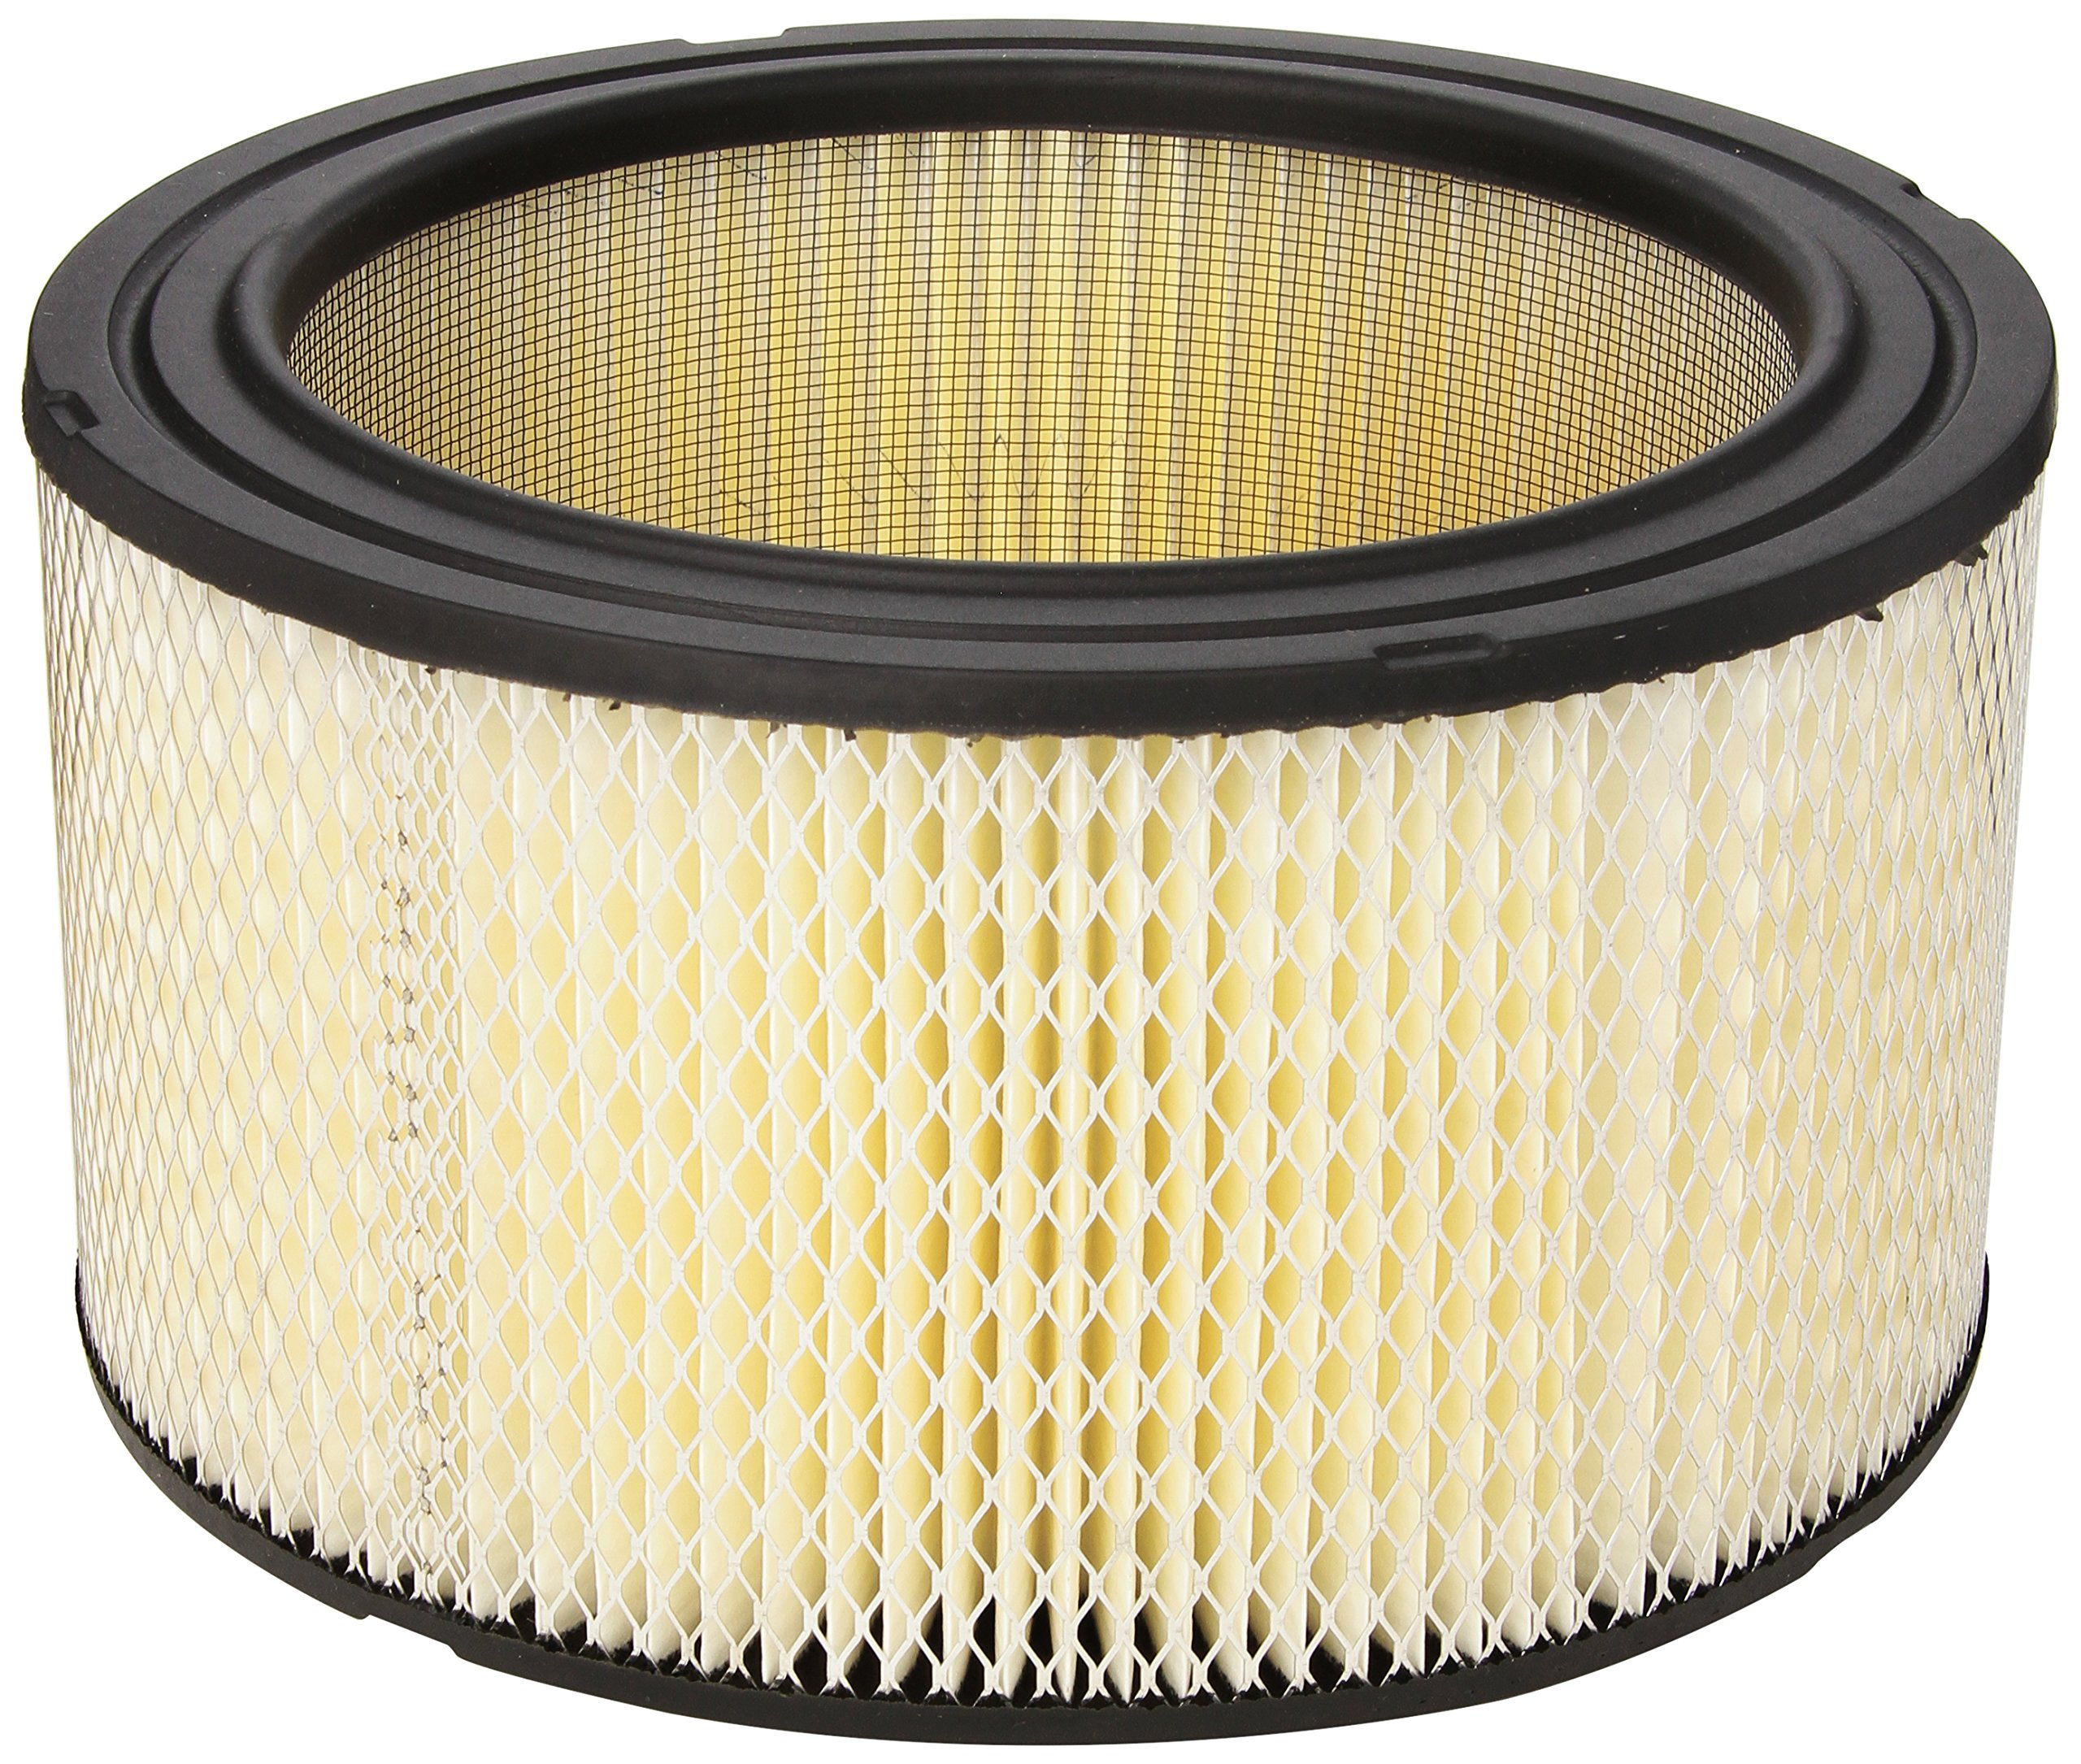 Bridgeport BP 11597448 Air Filter